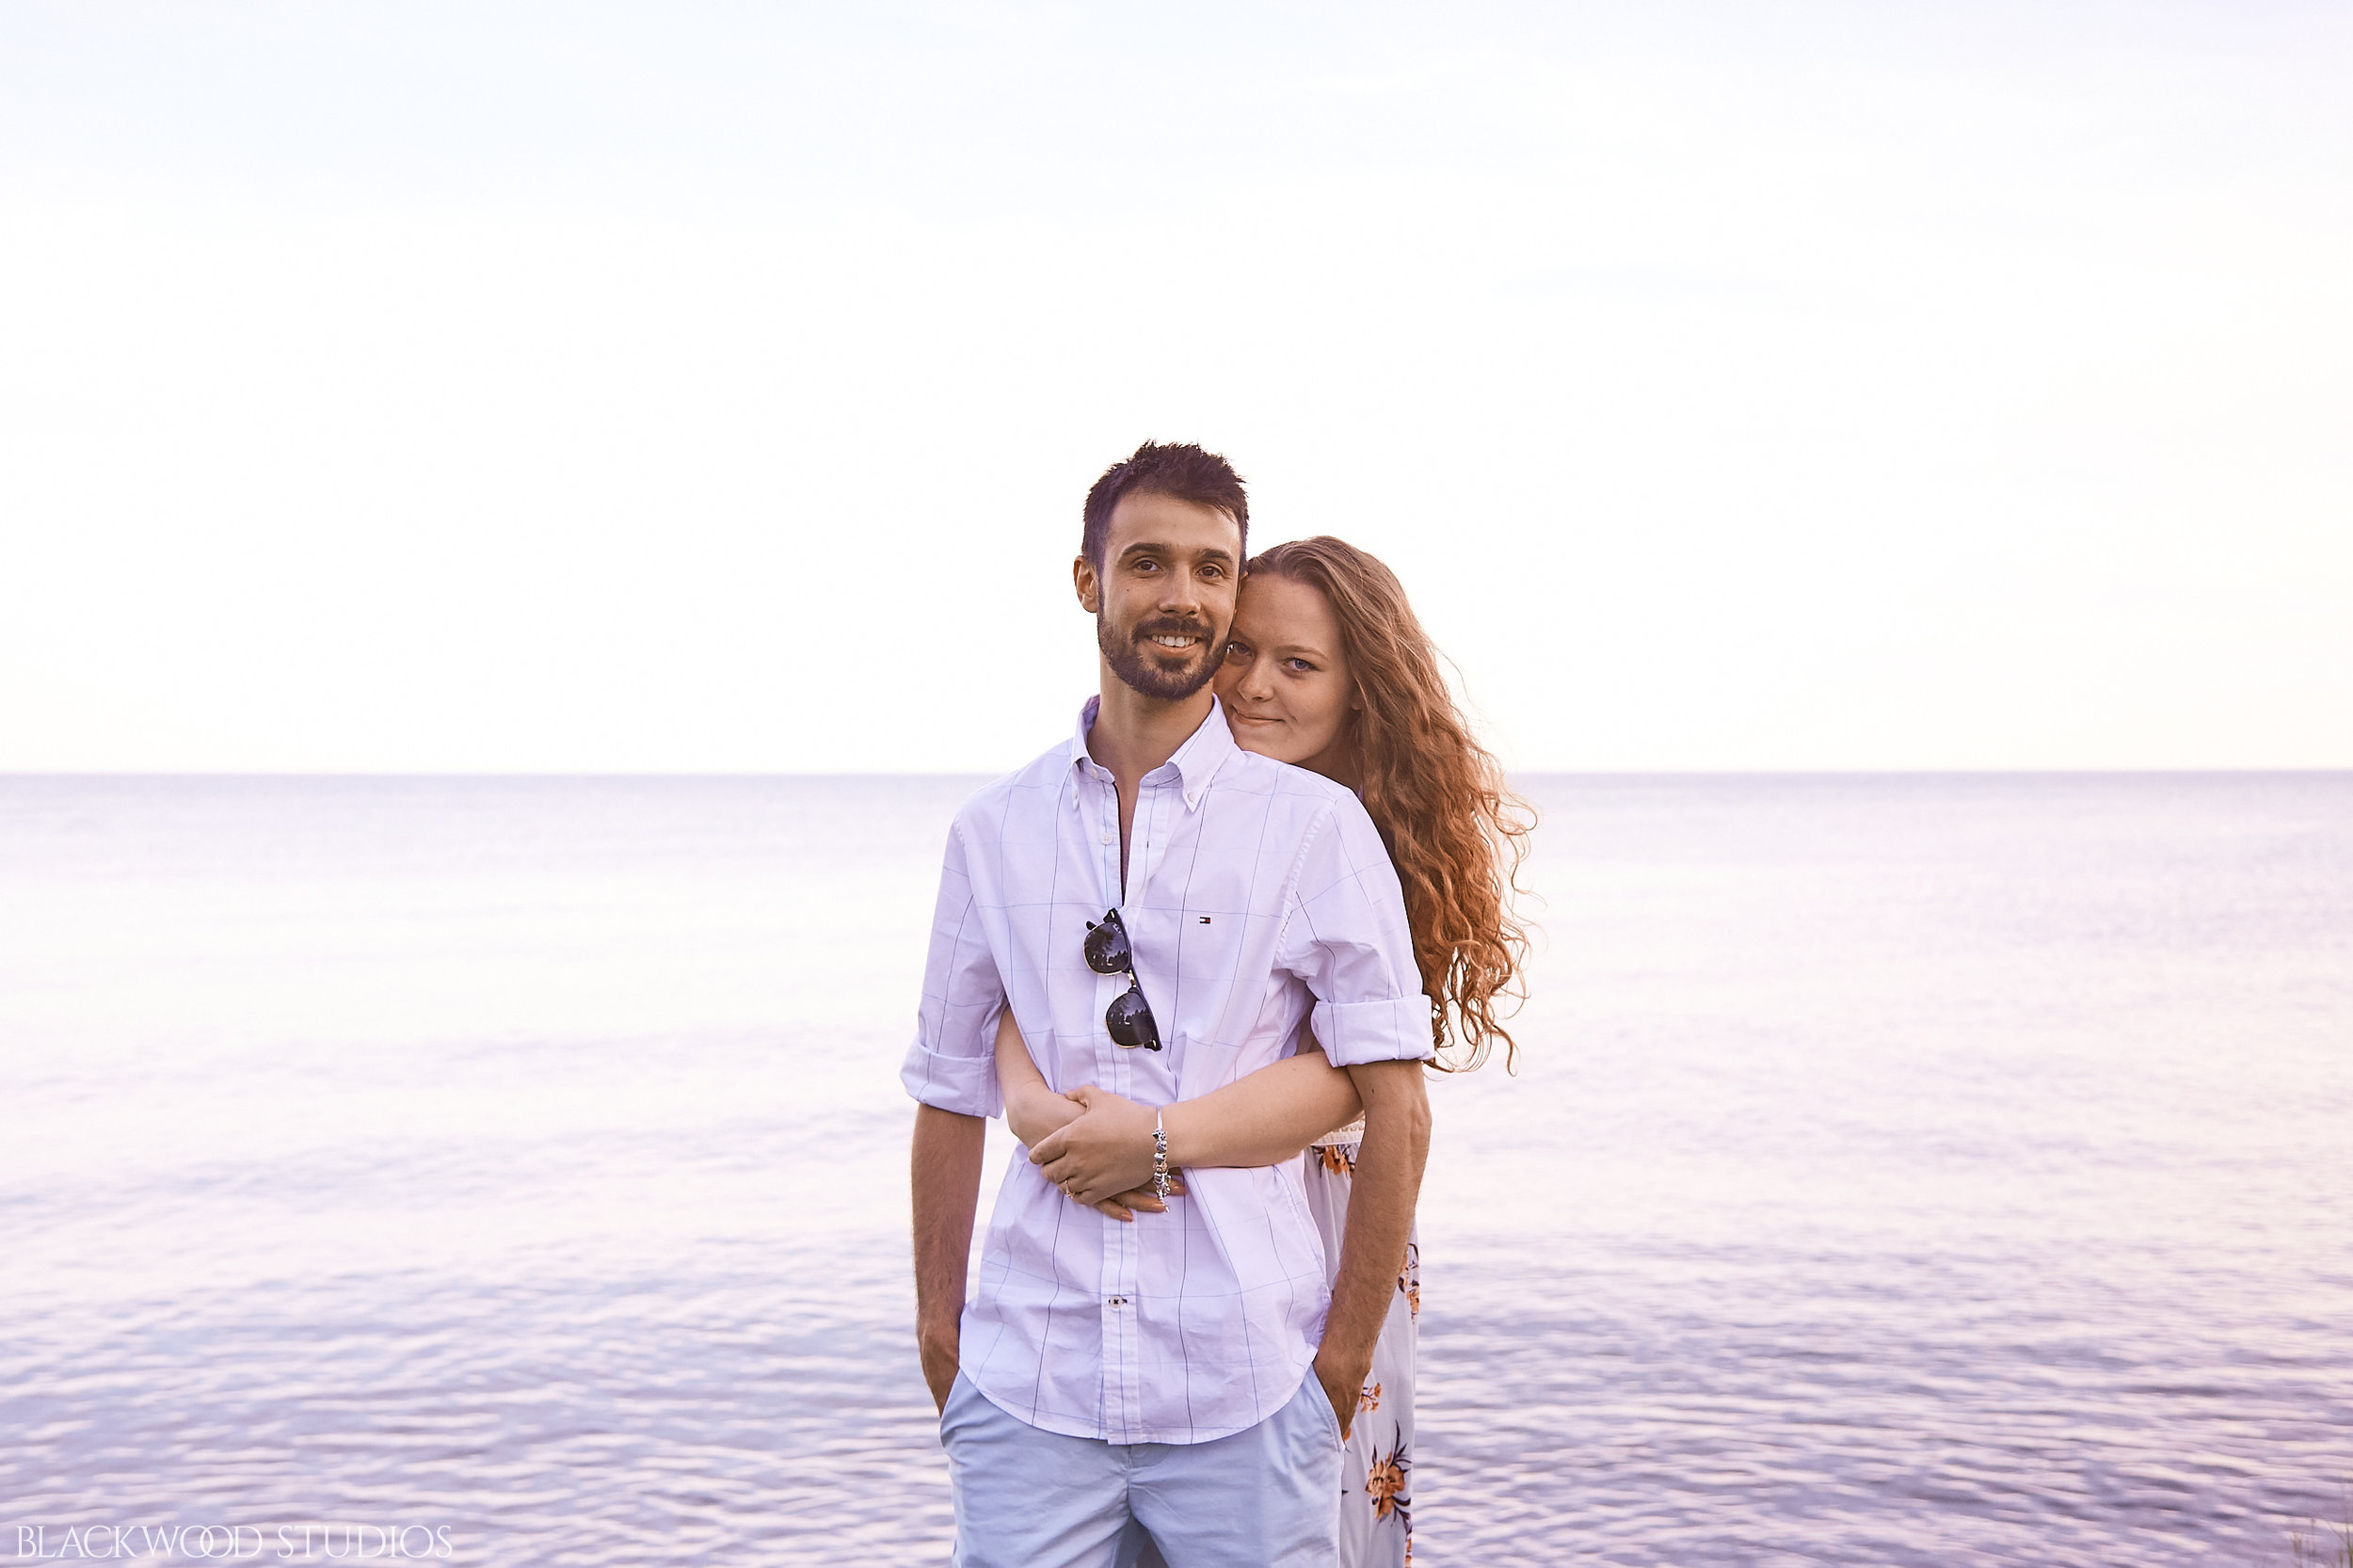 Blackwood-Studios-Photography-20190608195727-Brianna-Bryan-Engagement-Scarbourgh-Bluffs-Park-Ontario-Canada.jpg